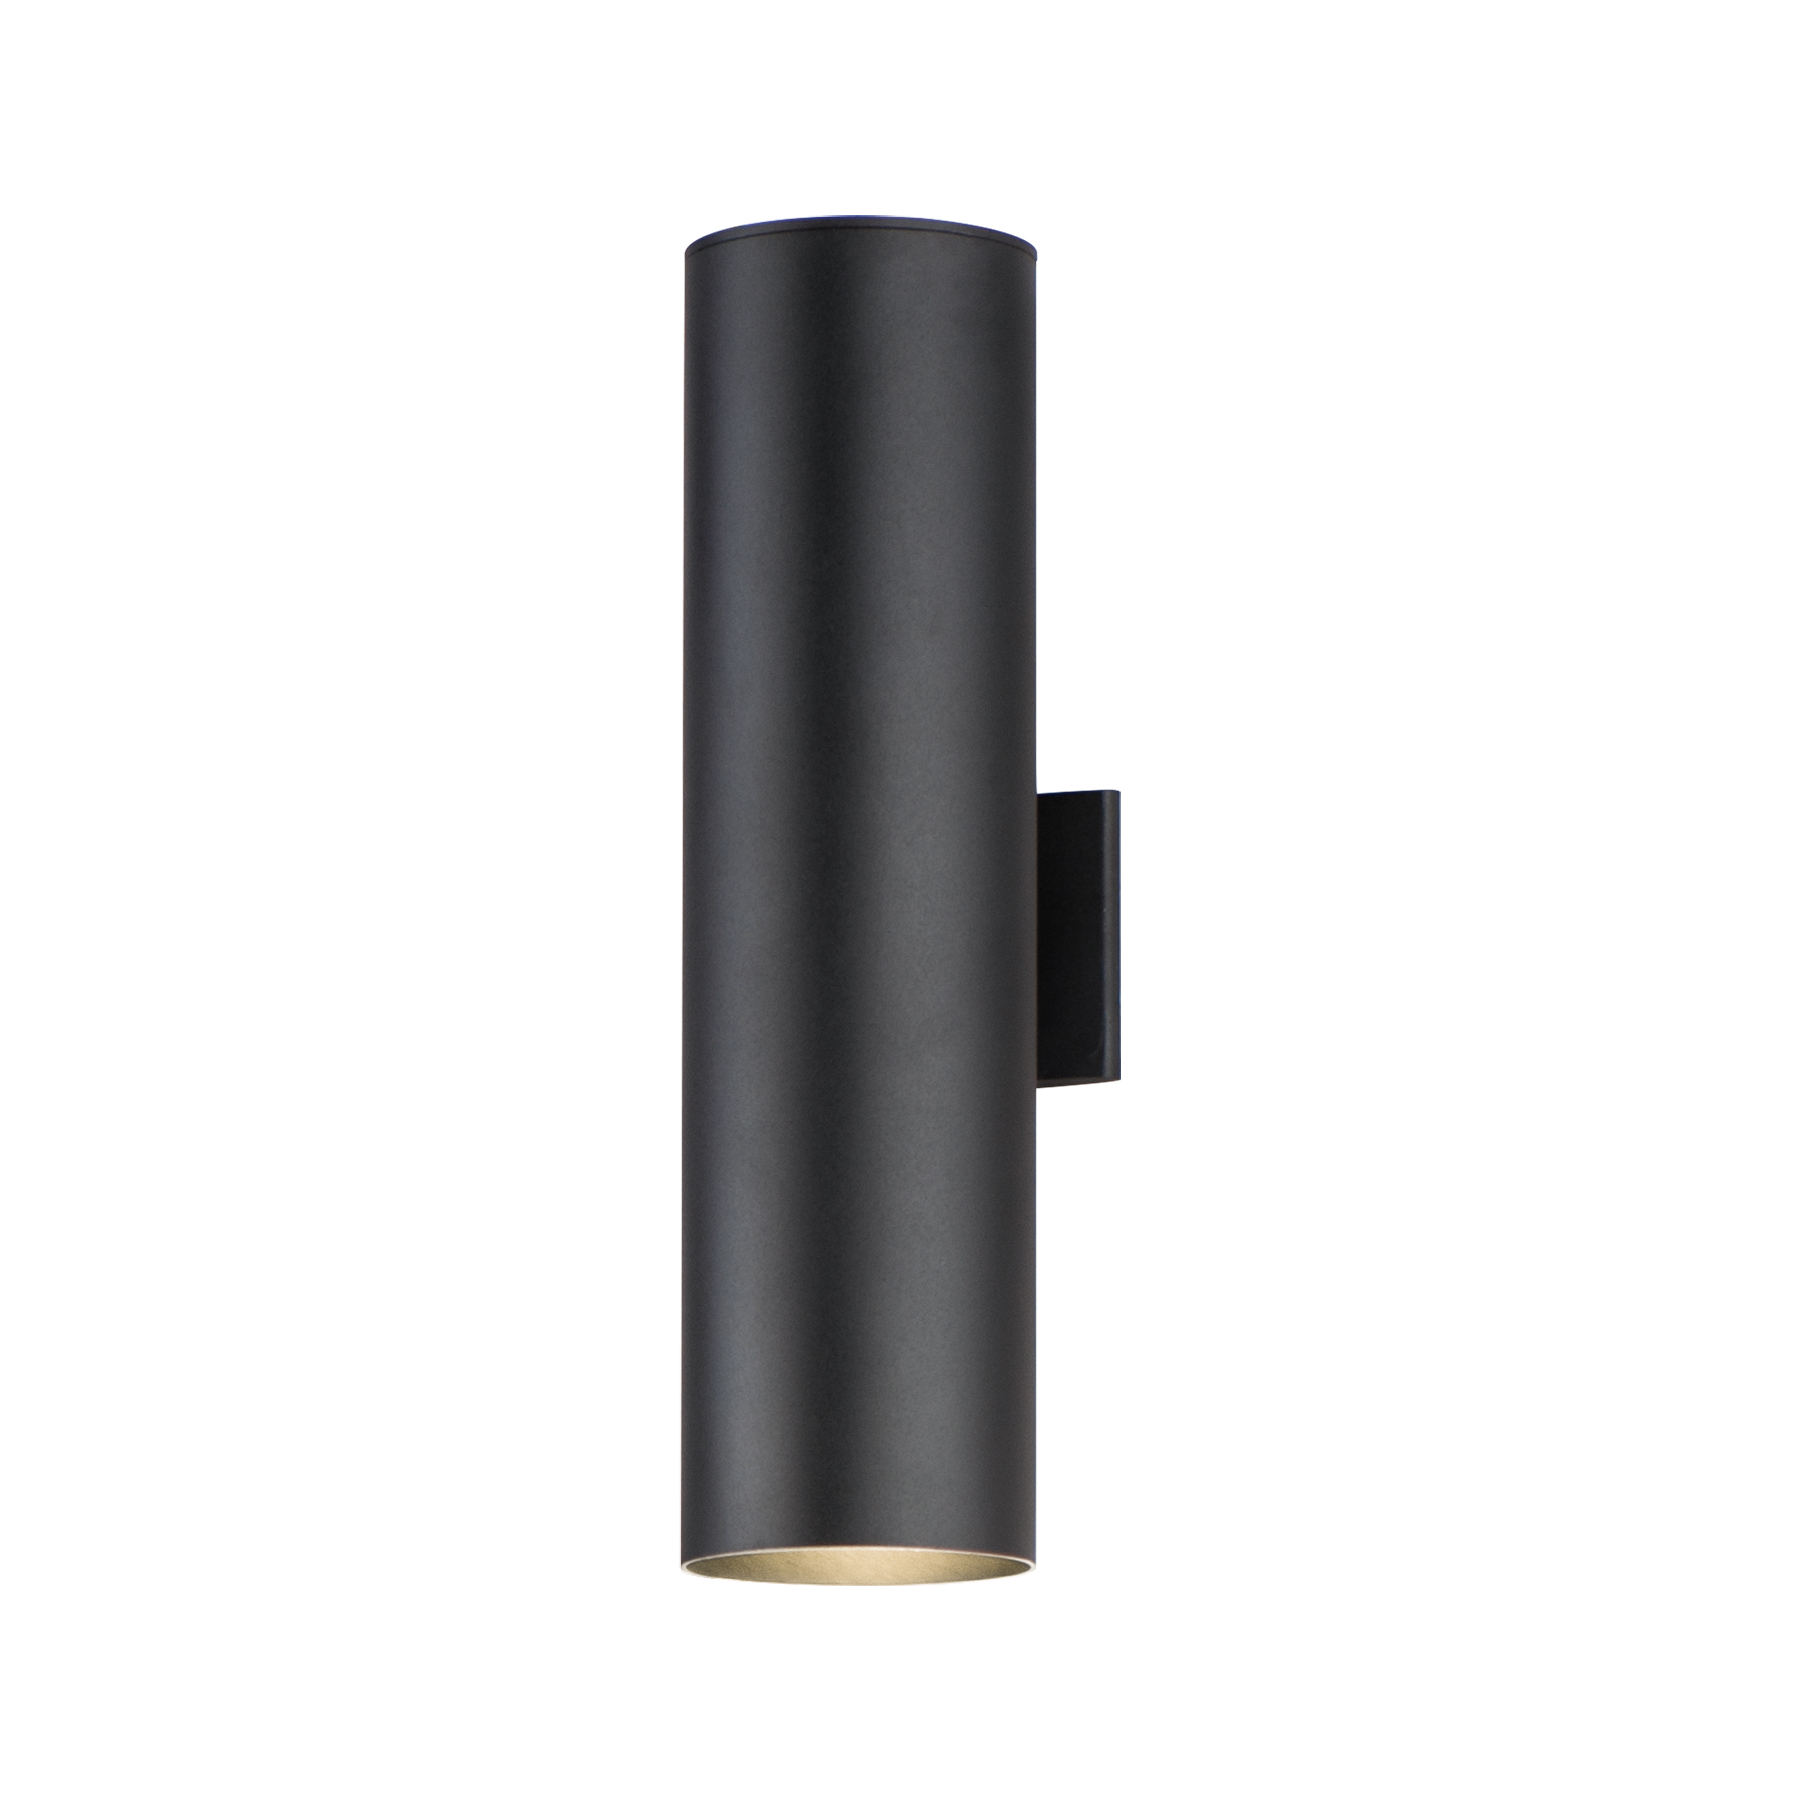 Outpost 2-Light 22-inch LED Outdoor Wall Sconce | Maxim Lighting